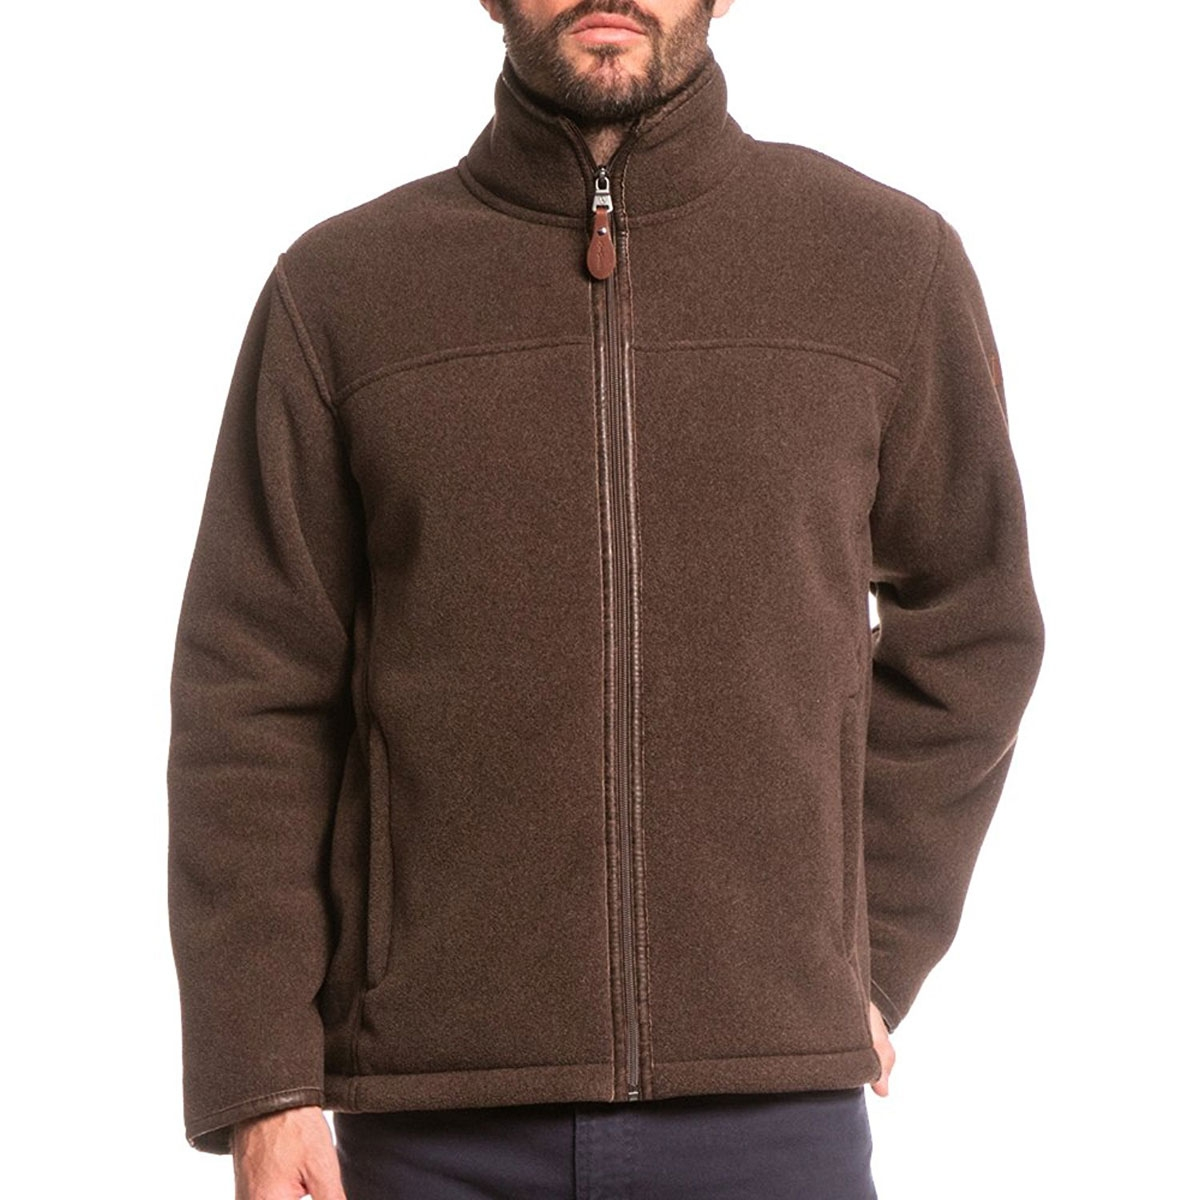 Aigle Garrano Polartec Sheepskin Fleece Jacket - Mouton Marron ...